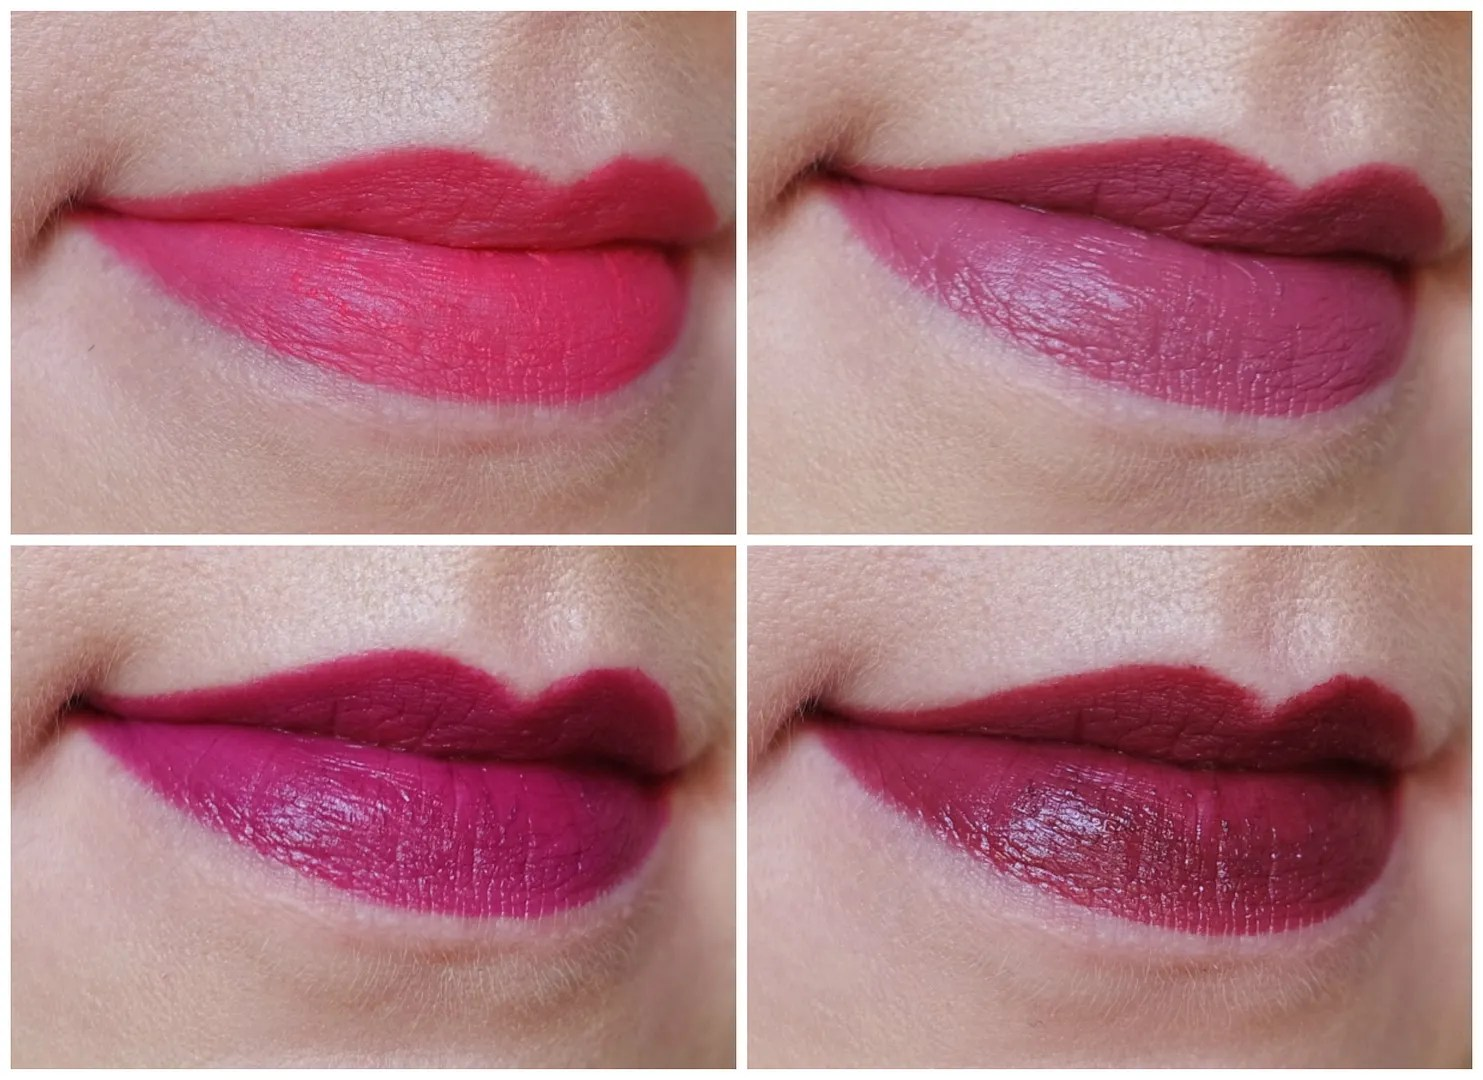 MAC lipsticks: Relentlessy Red (Retro Matte) Captive (Satin) Rebel (Satin) Darkside (Amplified)